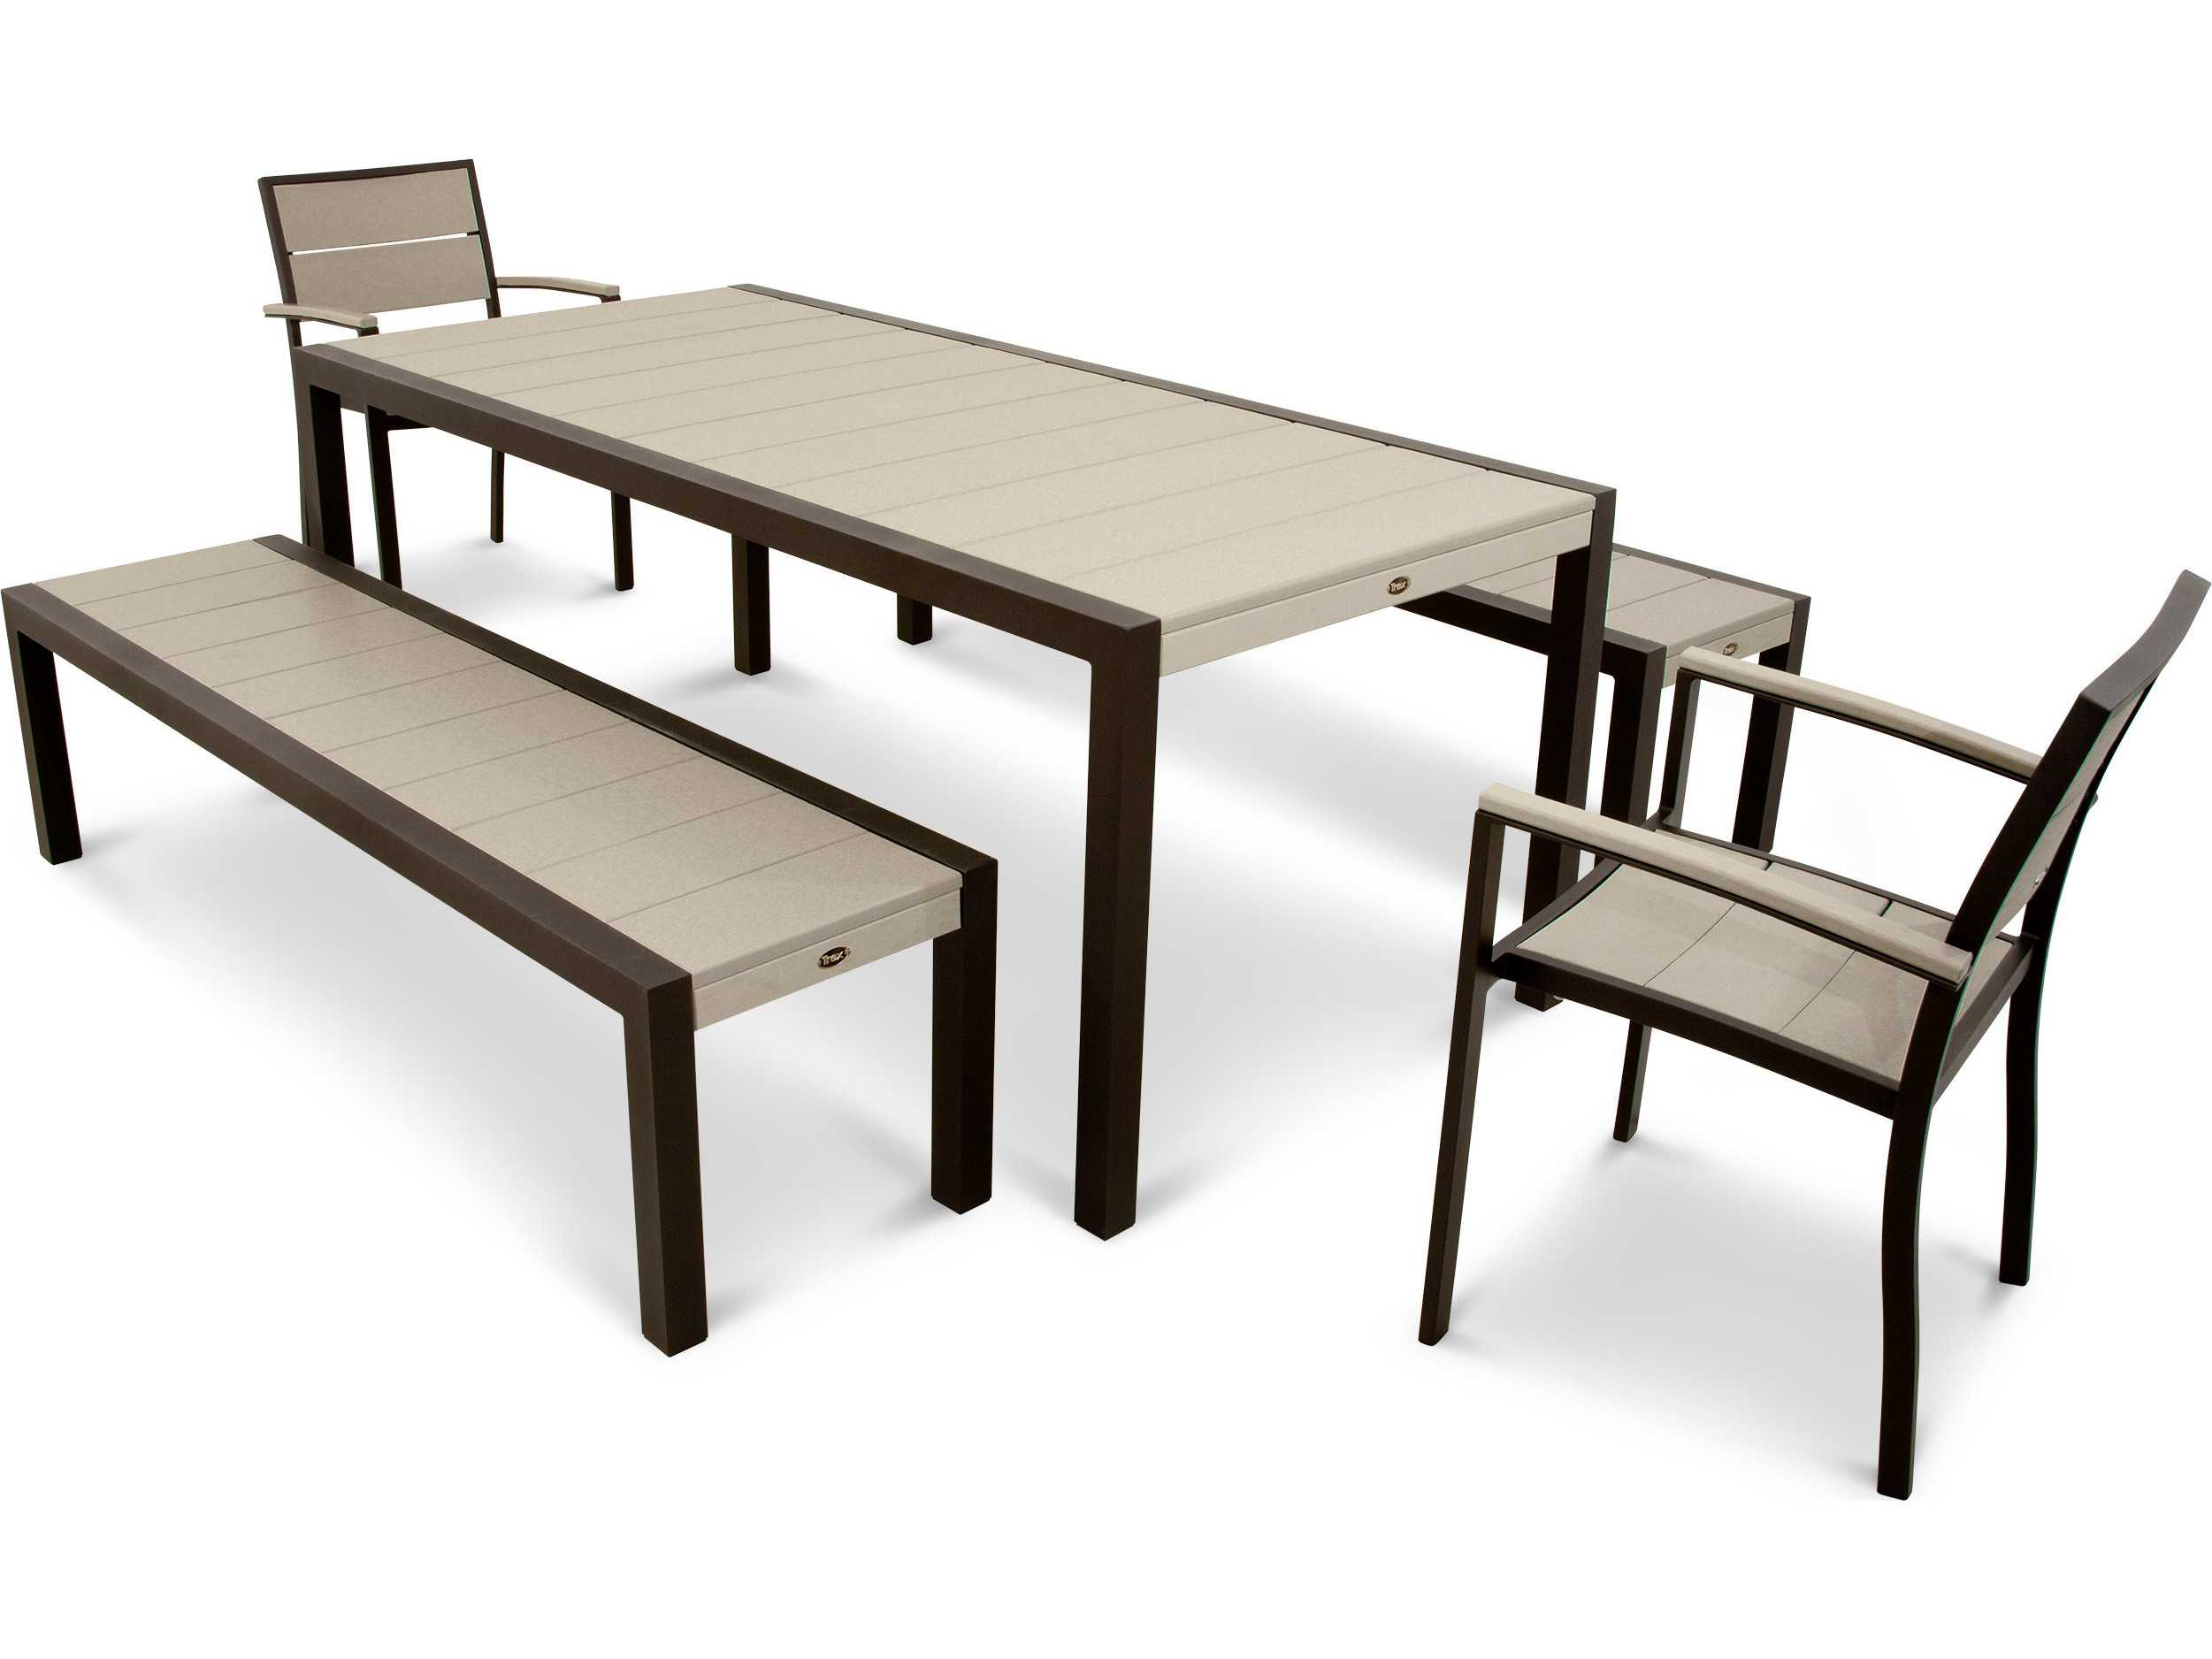 Trex Surf City Recycled Plastic 5 Piece Bench Dining Set Txs122 1